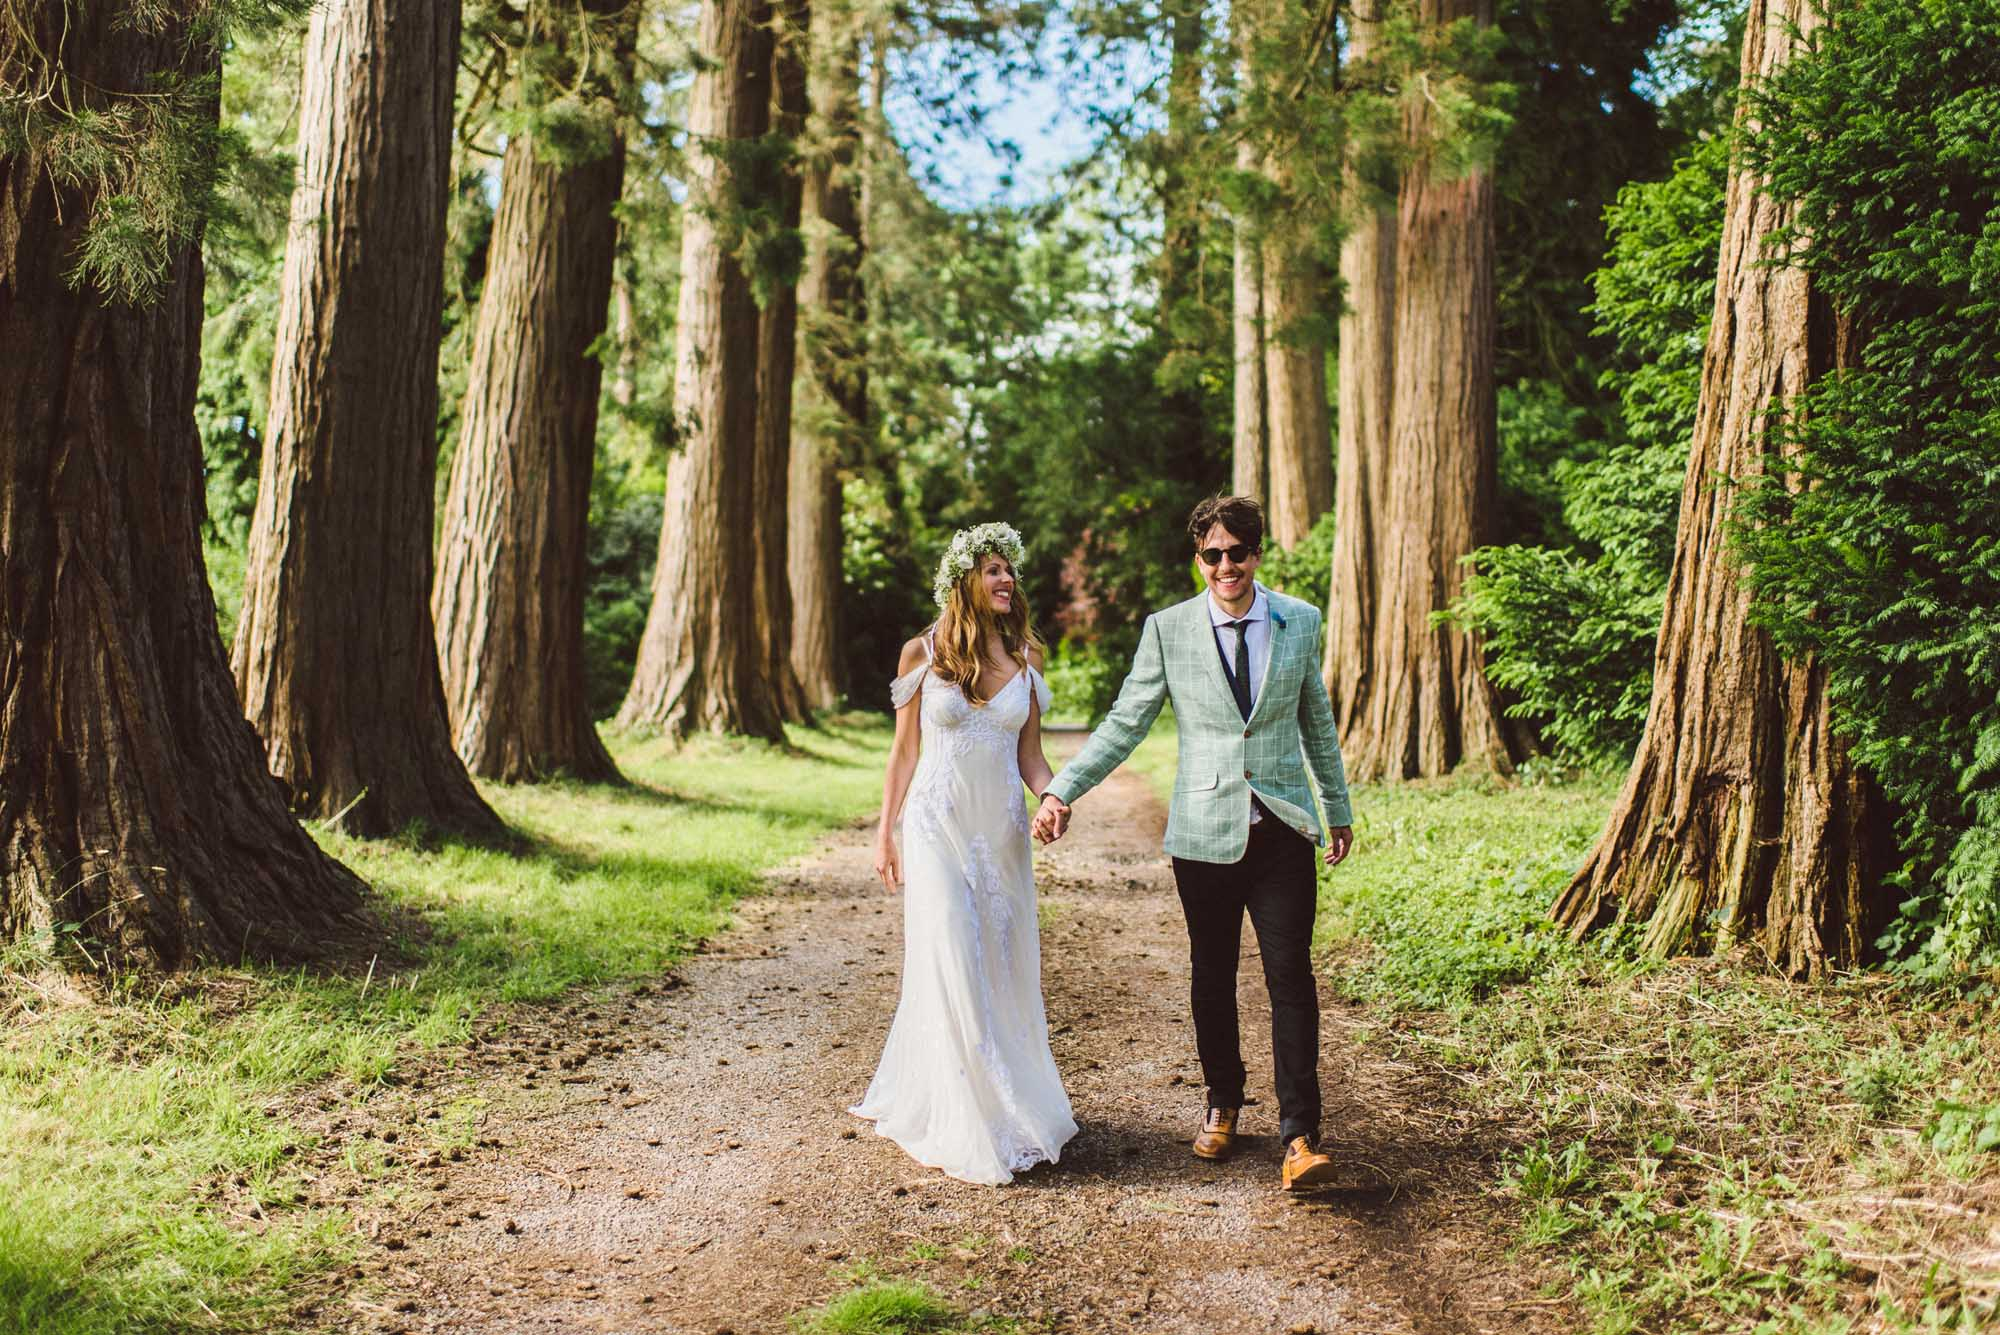 Summer wedding at Patrick's Barn, West Sussex - Harriet and Stuart